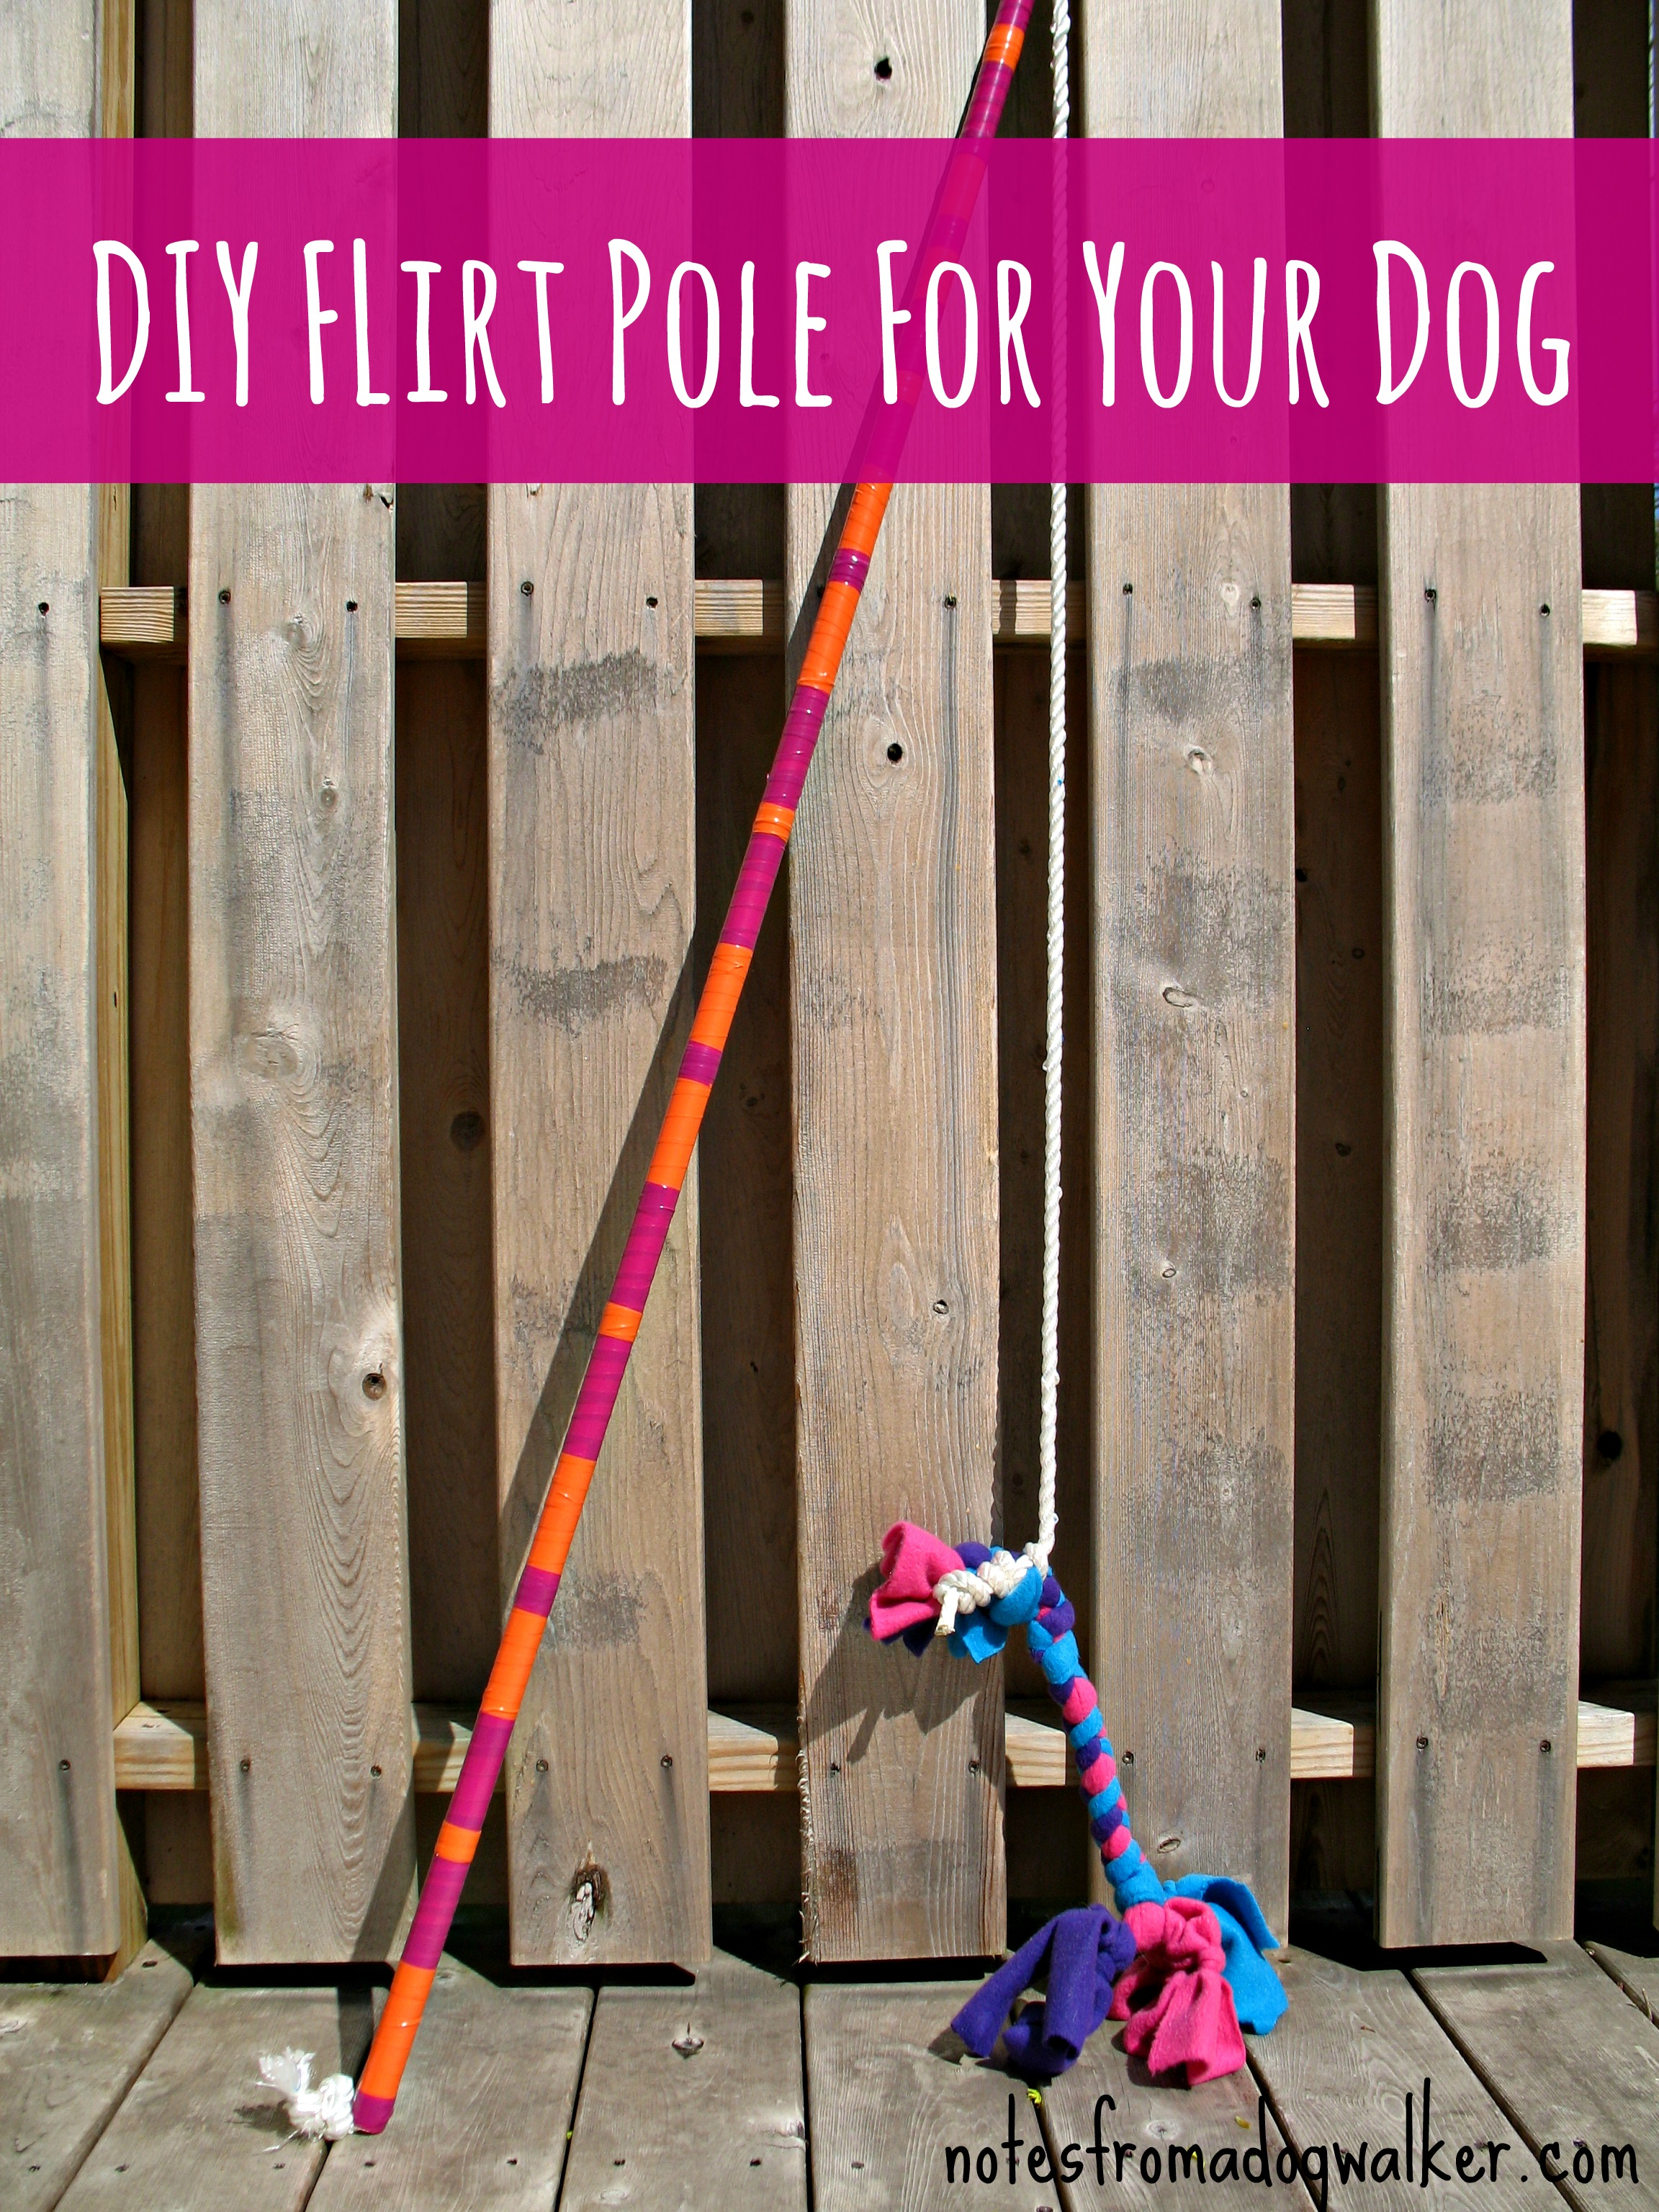 Pole Toys For Dogs